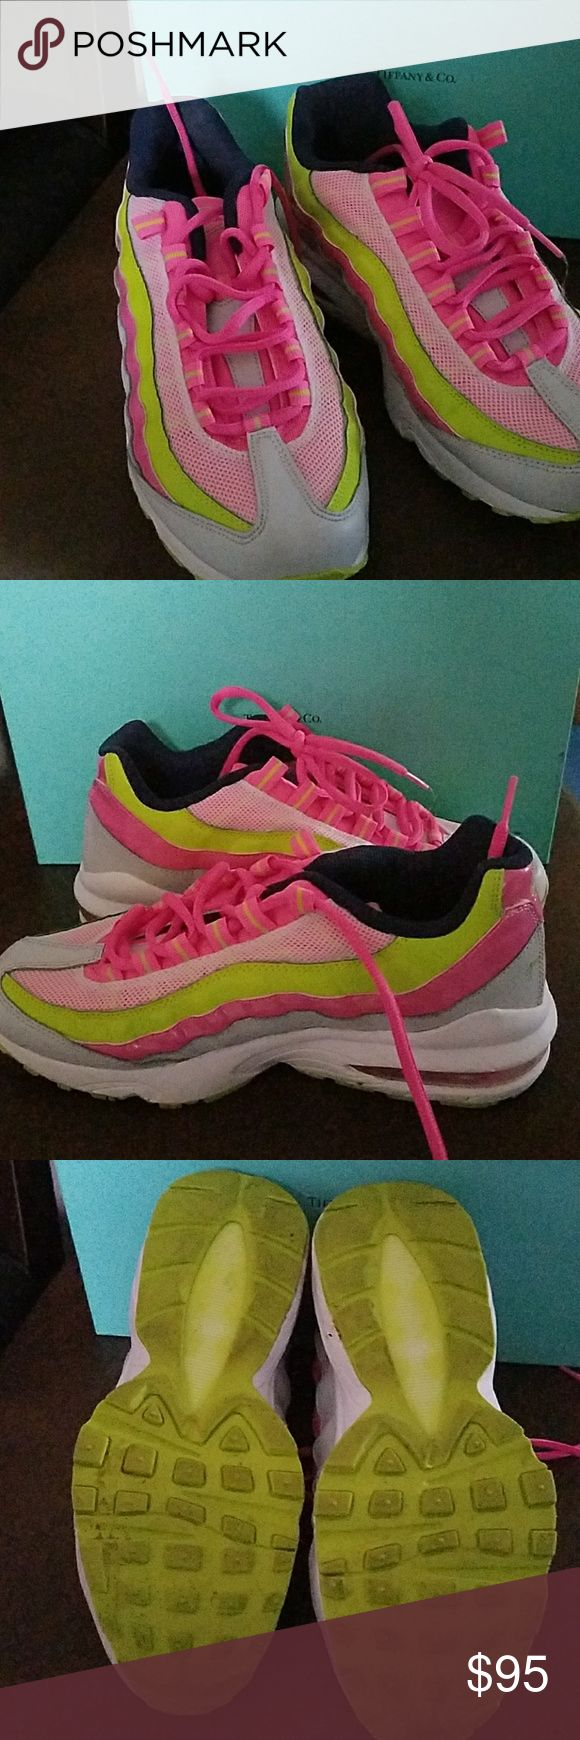 Air Max 95 Neon yellow, blue, pink and white Air Max 95 Nike Shoes Sneakers